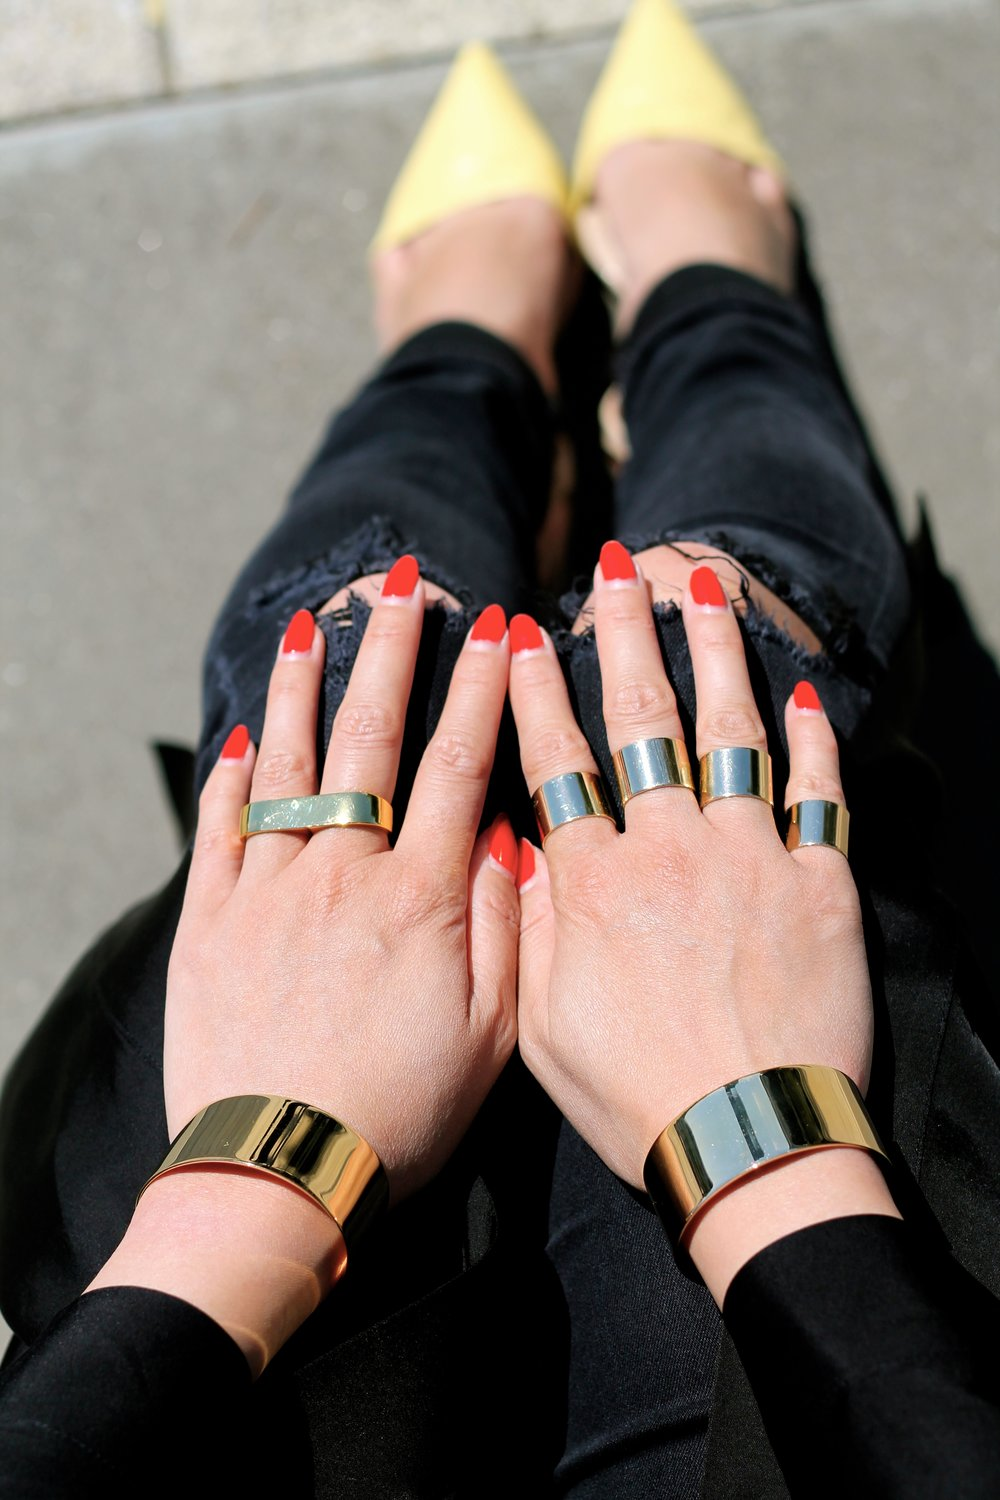 Svelte Metals cuffs ,  Maison Margiela  and  Erica Annenberg rings